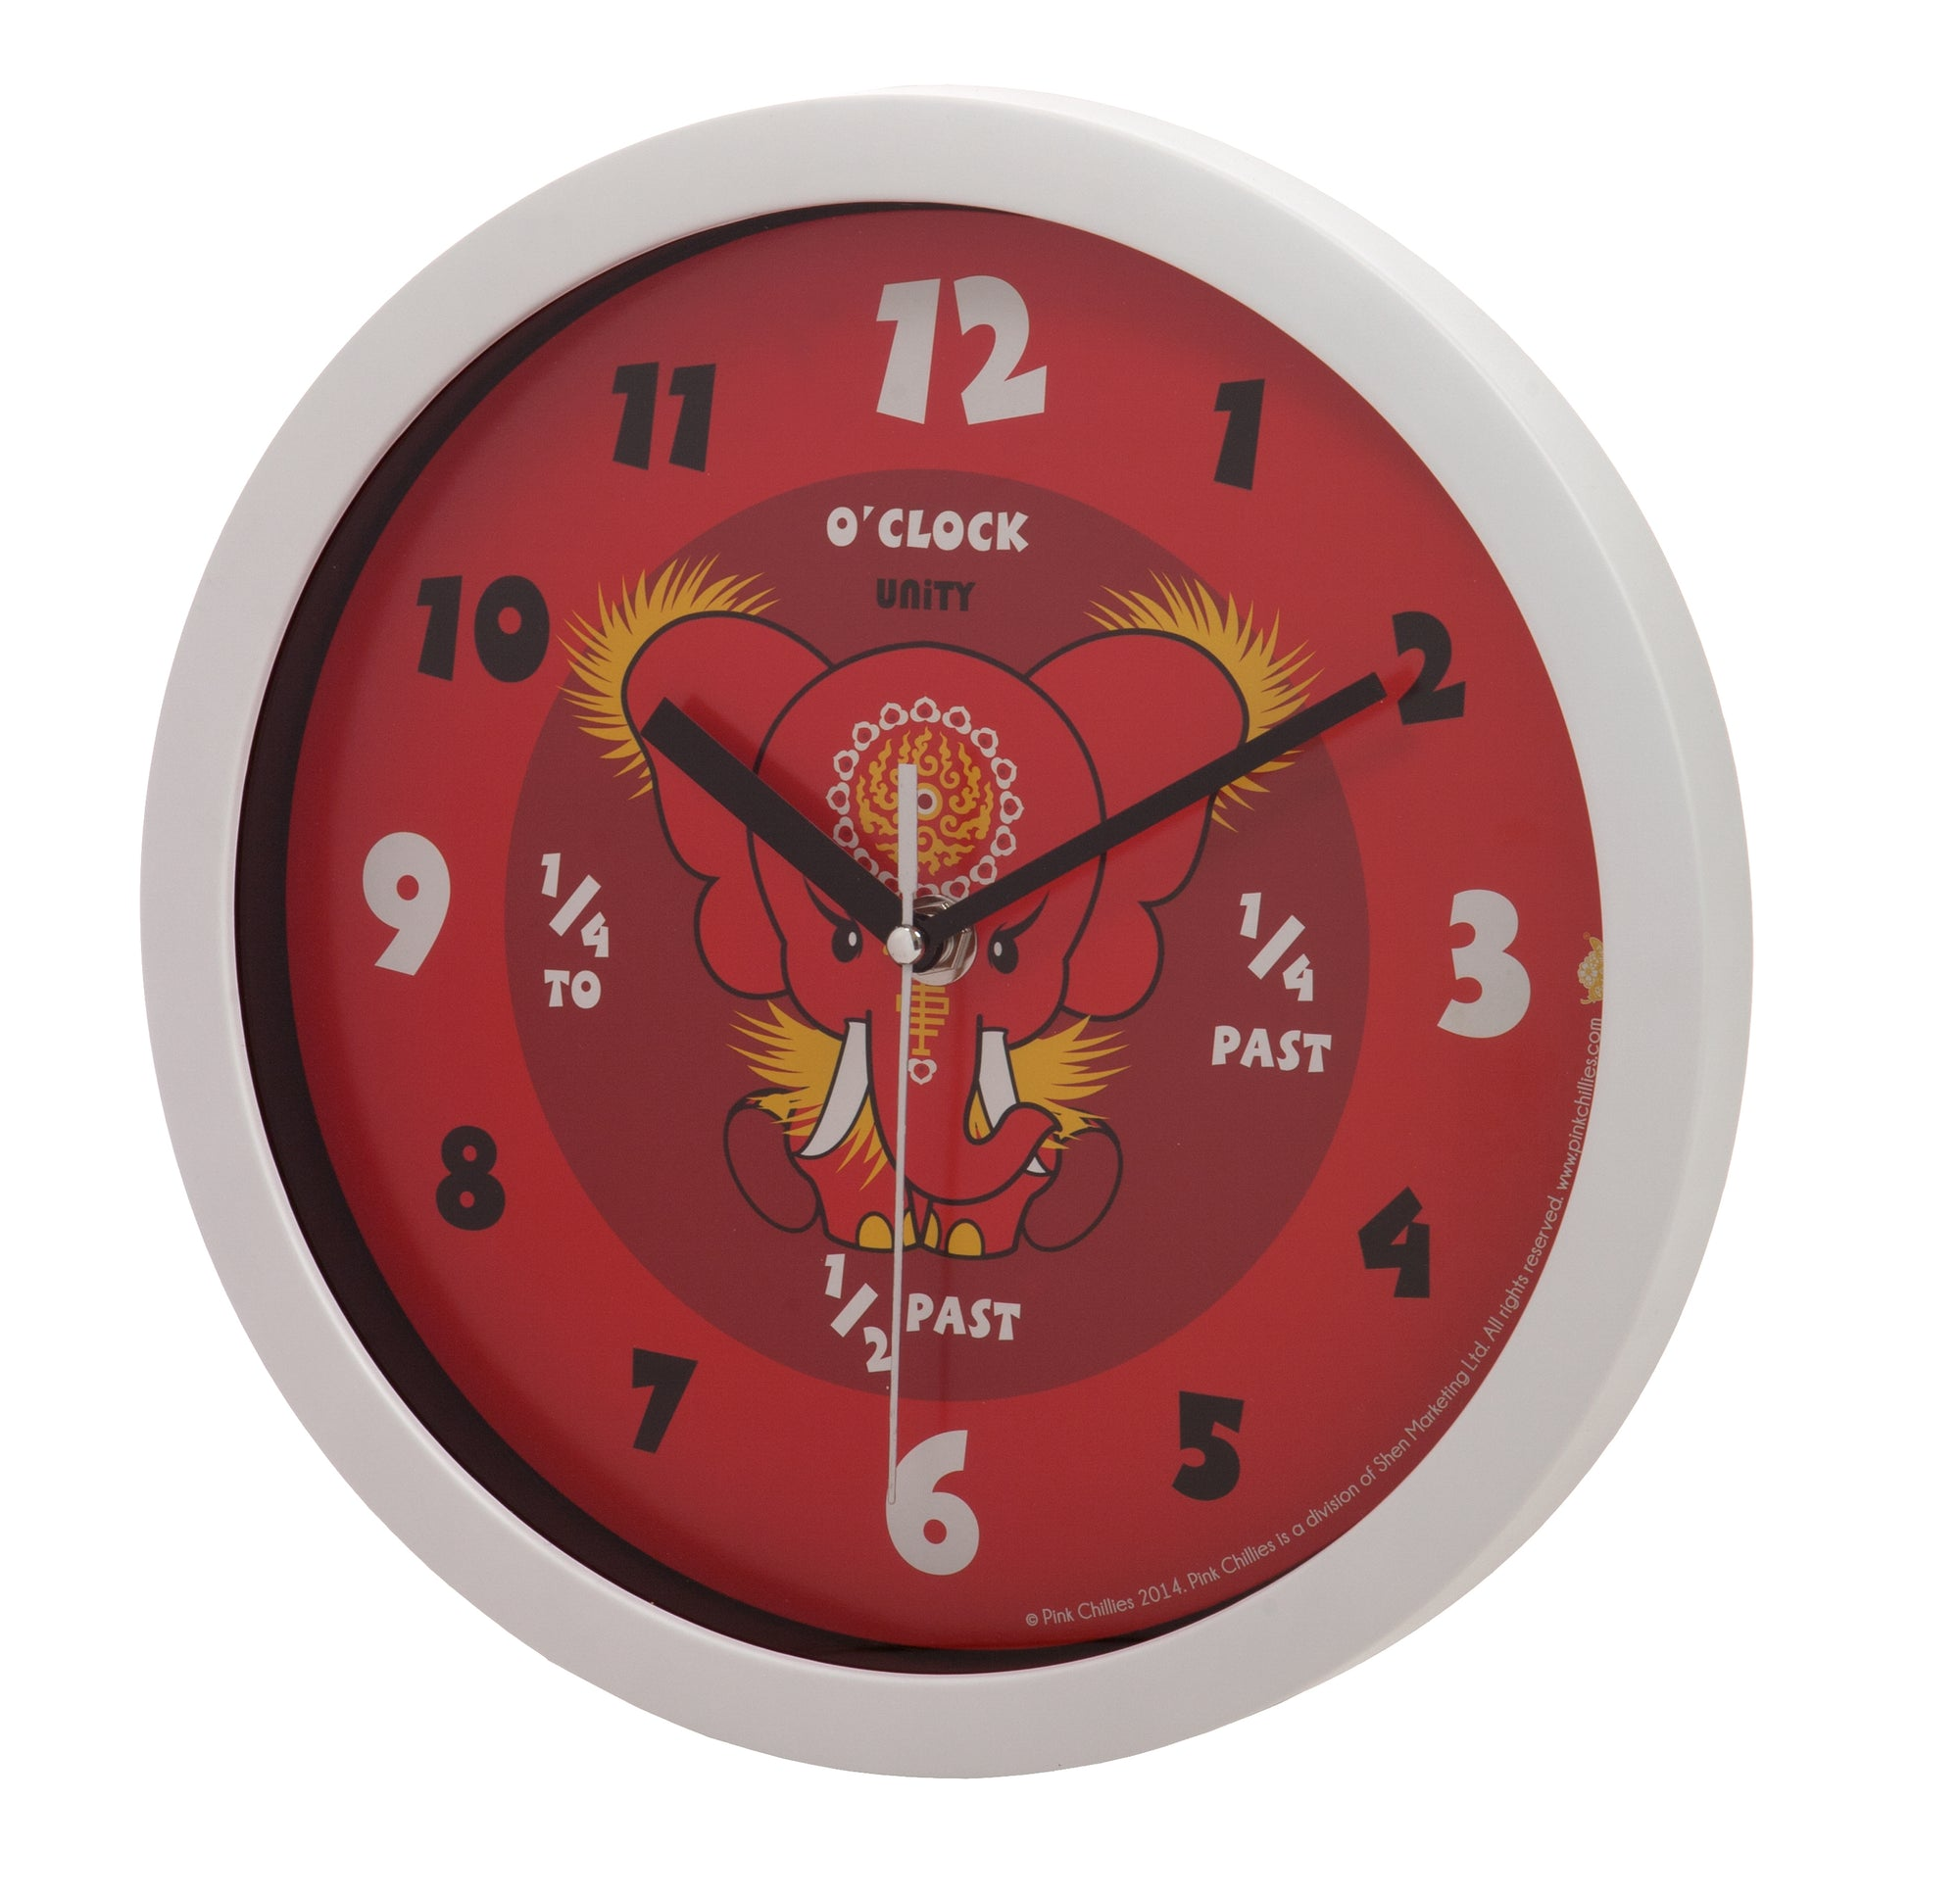 80% Off a Kids Wall Clock - Only £1 + Delivery